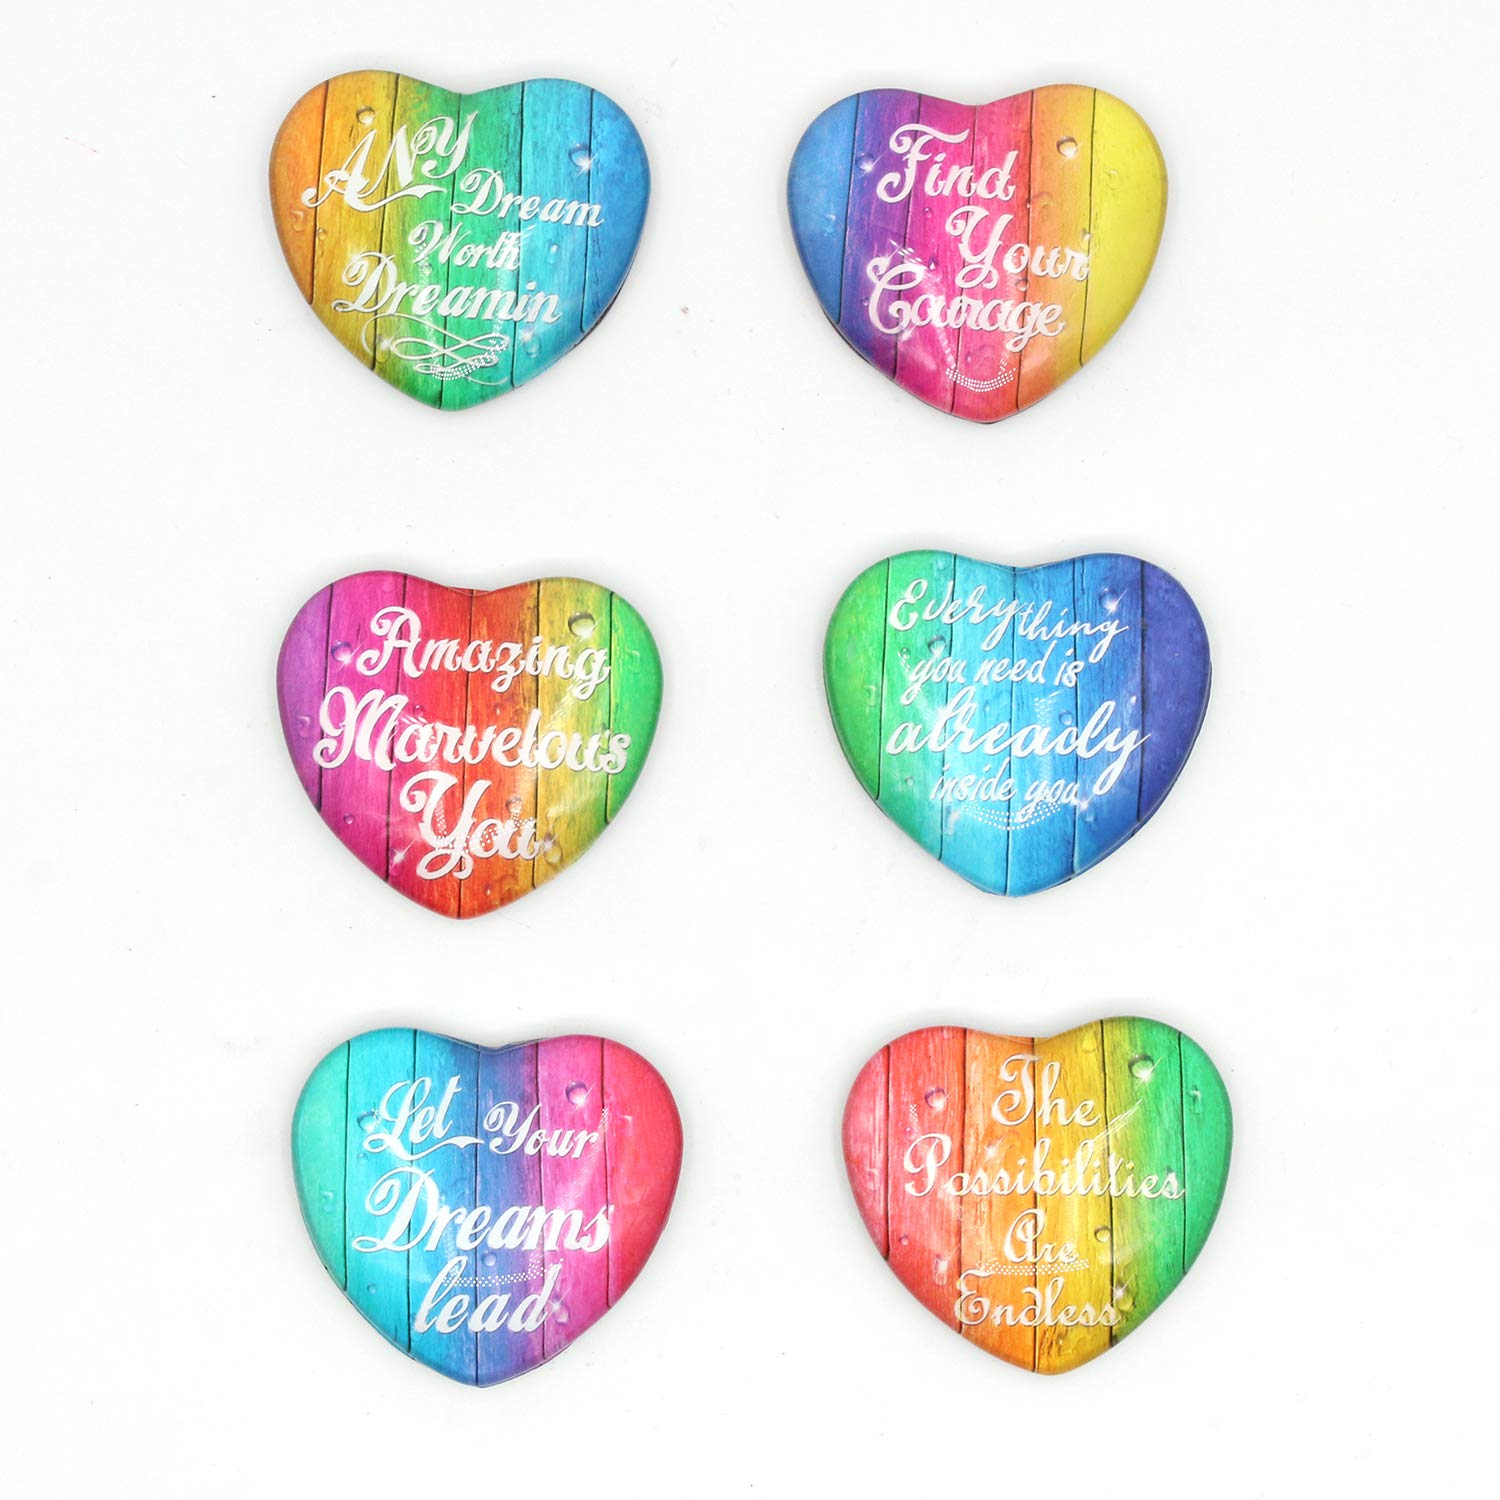 6pcs Colourful Inspirational Heart Shape Refrigerator Magnets,Office Magnets Whiteboard, Magnet Gifts for girls daughter Teens Classroom Locker,Whiteboard,or or children collecting/trading item